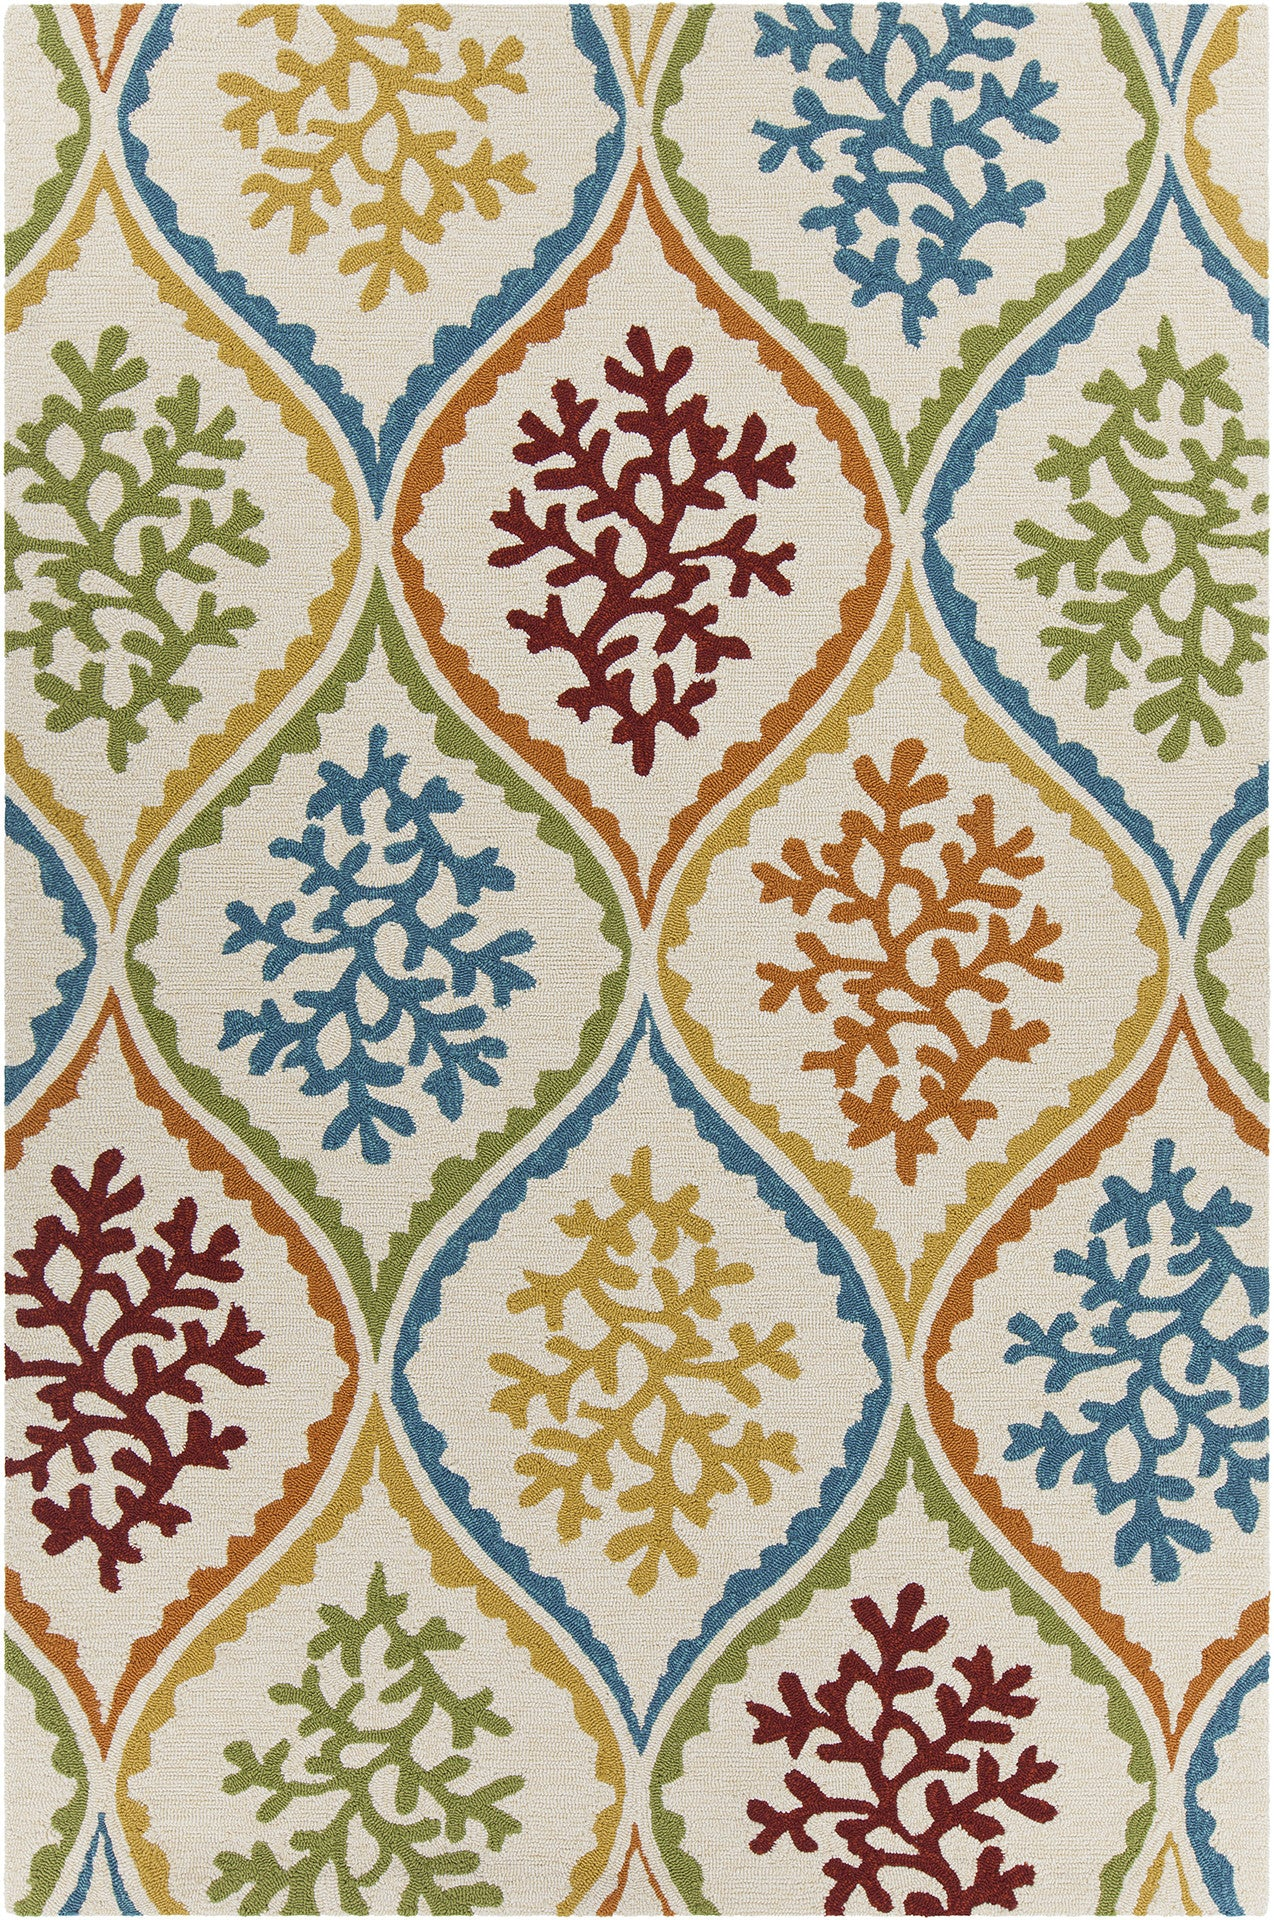 Terra Collection Hand Tufted Area Rug In Cream Blue Green Red